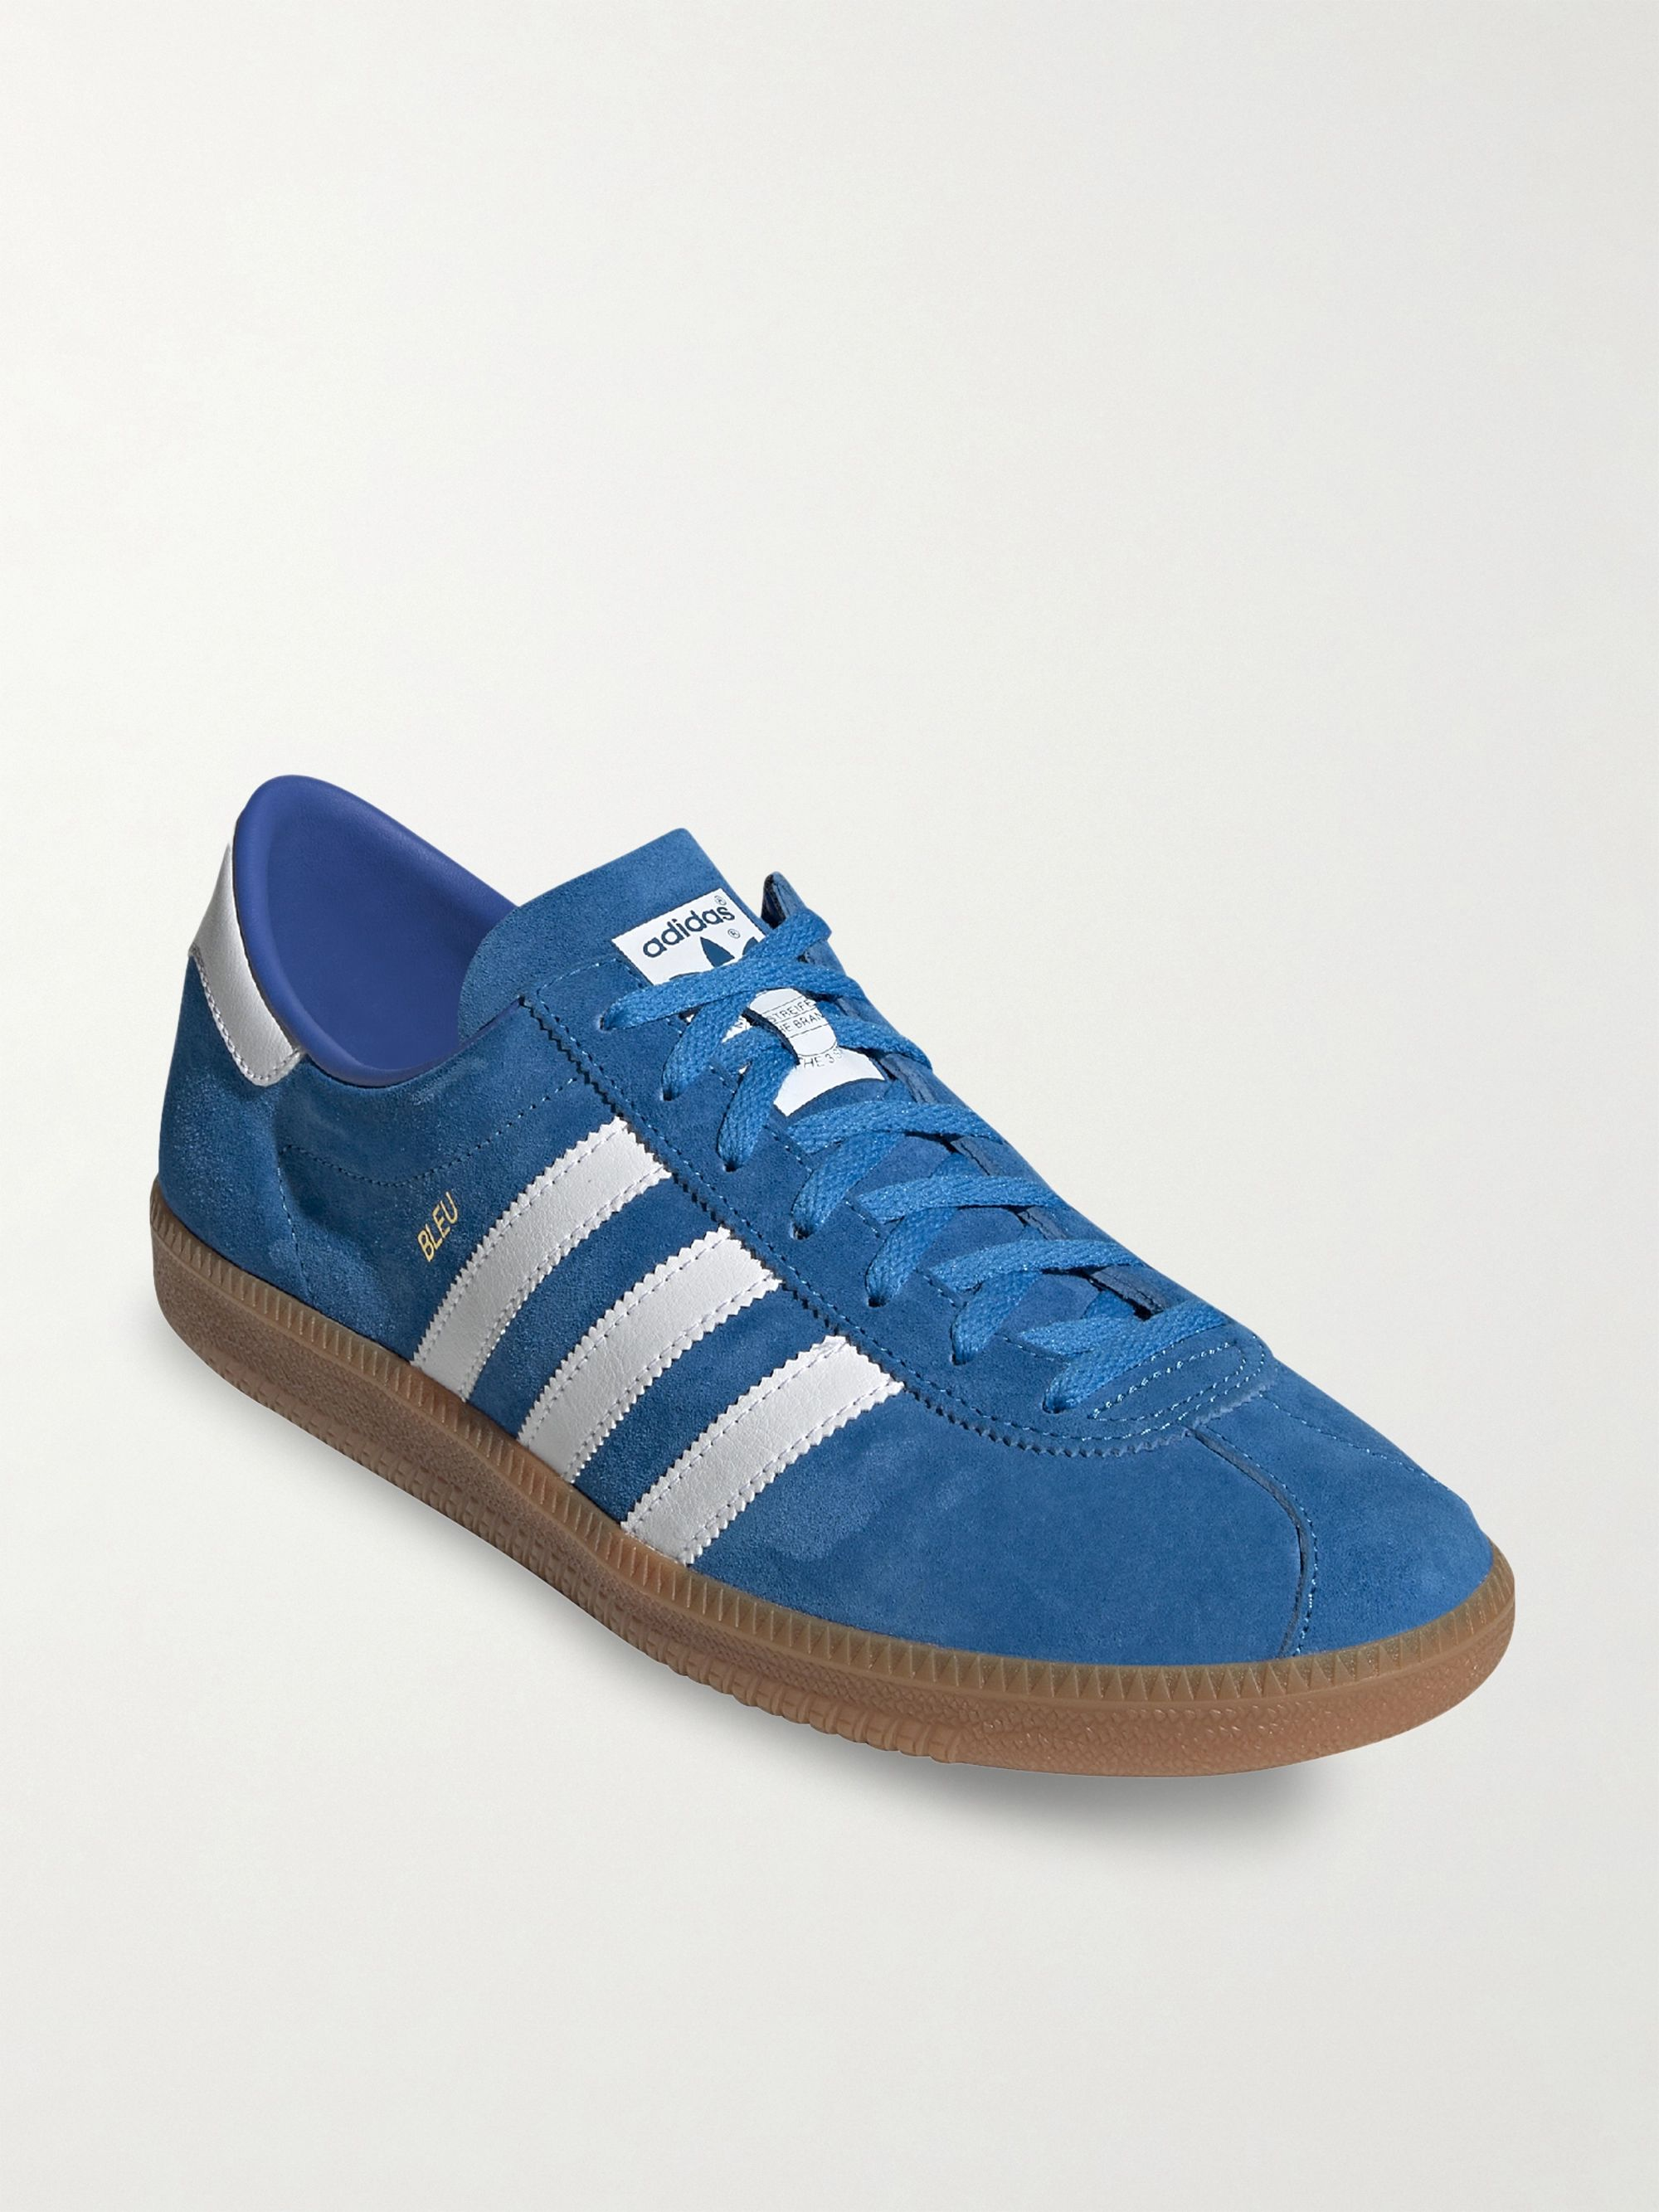 Bleu Nubuck and Leather Sneakers